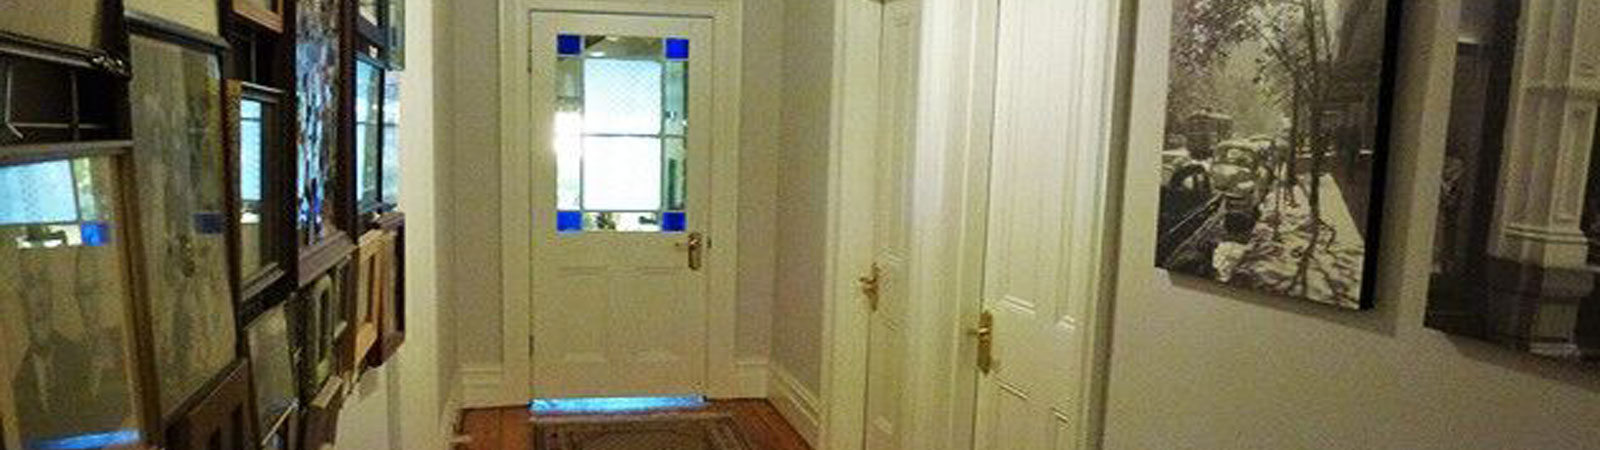 Find french doors ads in our building materials category from melbourne region vic Internal French Doors Melbourne